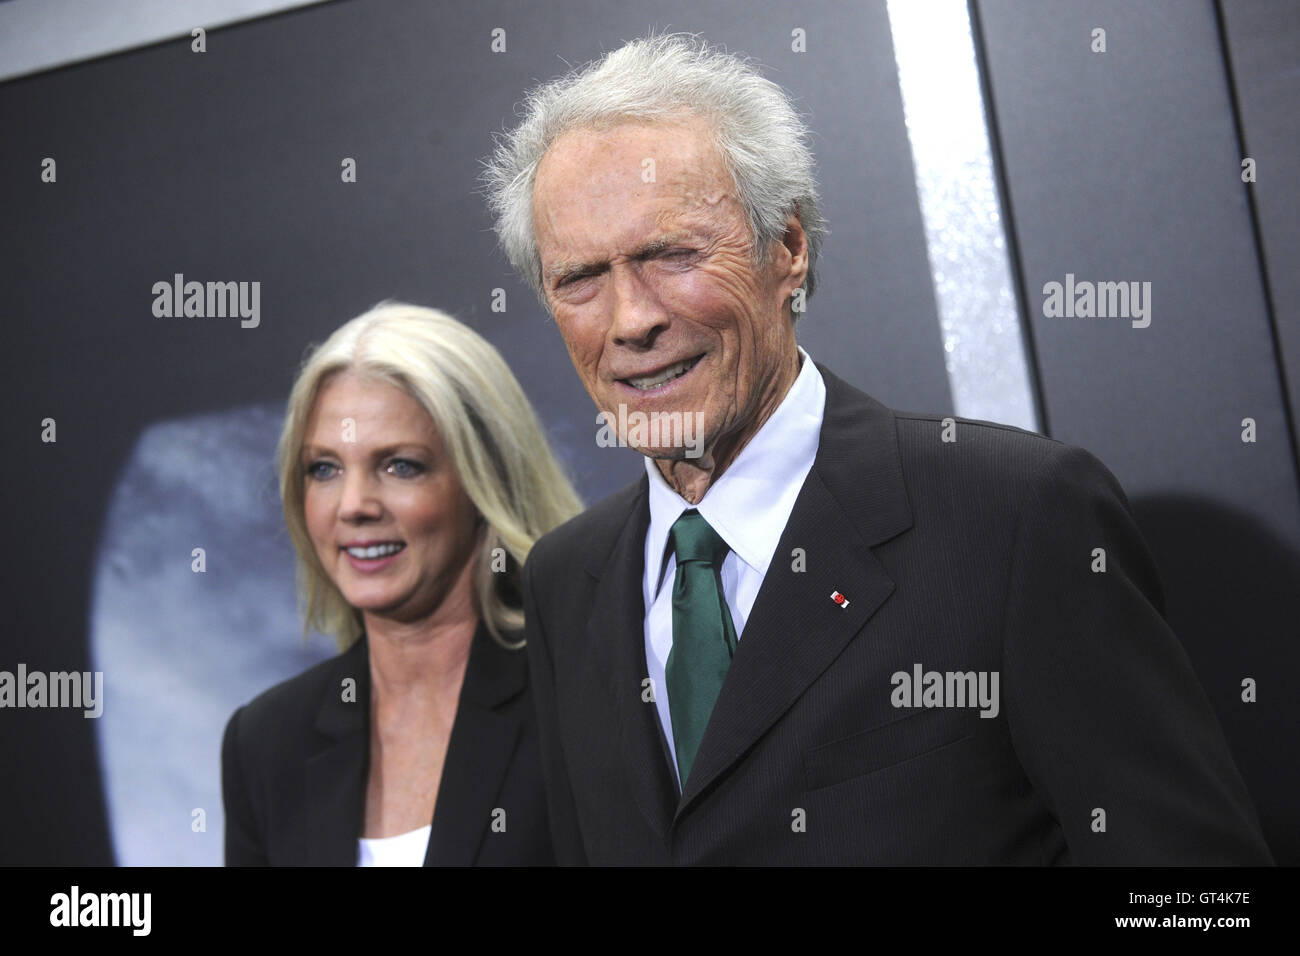 La città di New York. 6 Sep, 2016. Christina Sandera e Clint Eastwood frequentare il 'Sully' New York premiere a Alice Tully Hall, Lincoln Center il 6 settembre 2016 a New York City. | Verwendung weltweit/picture alliance © dpa/Alamy Live News Foto Stock